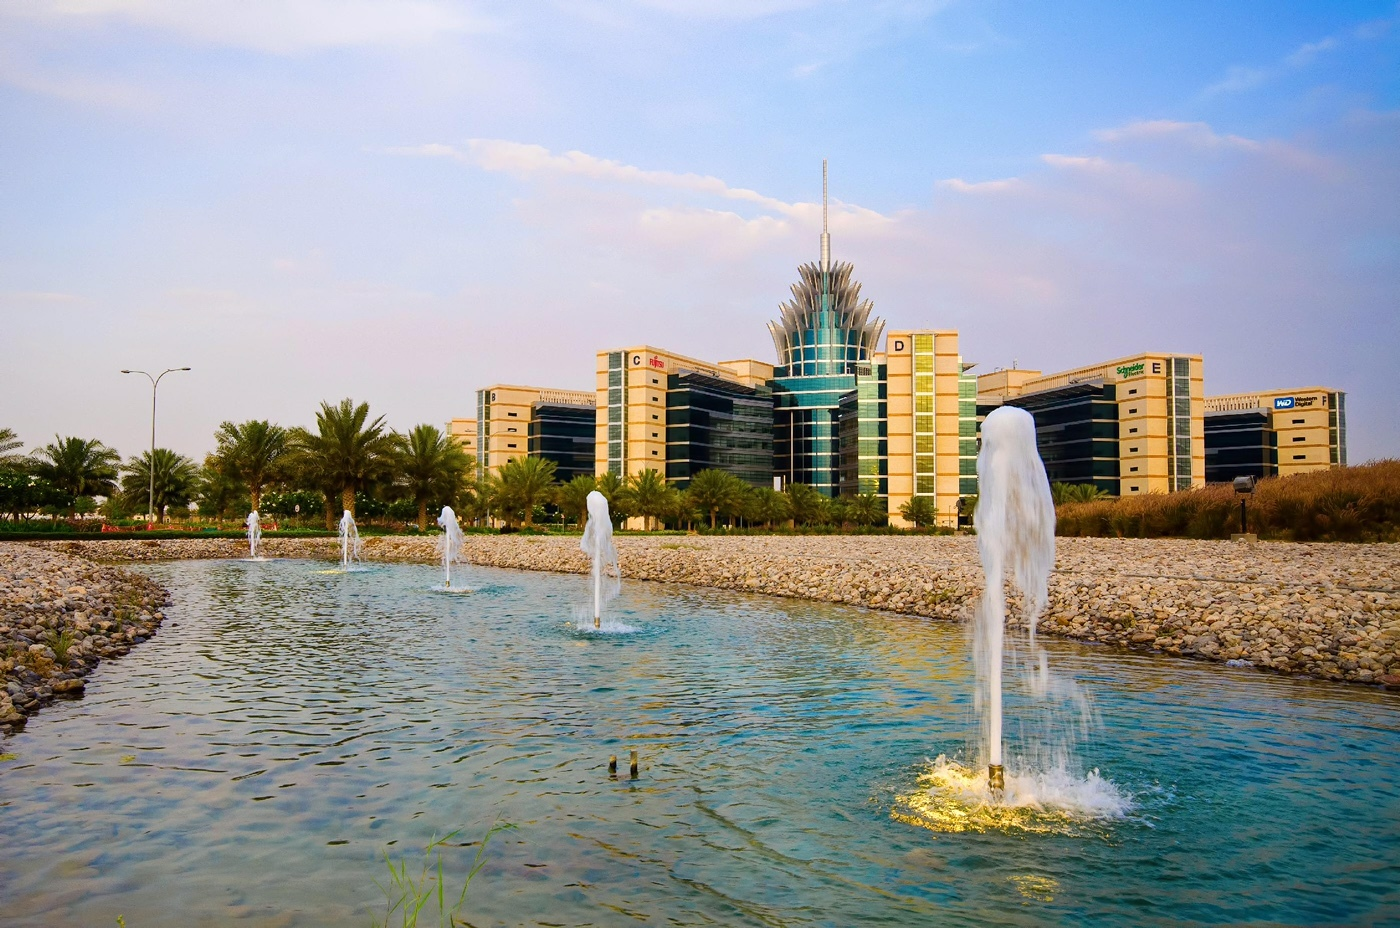 Dubai Silicon Oasis Authority (DSOA) HQ Building (Photo: ME NewsWire)